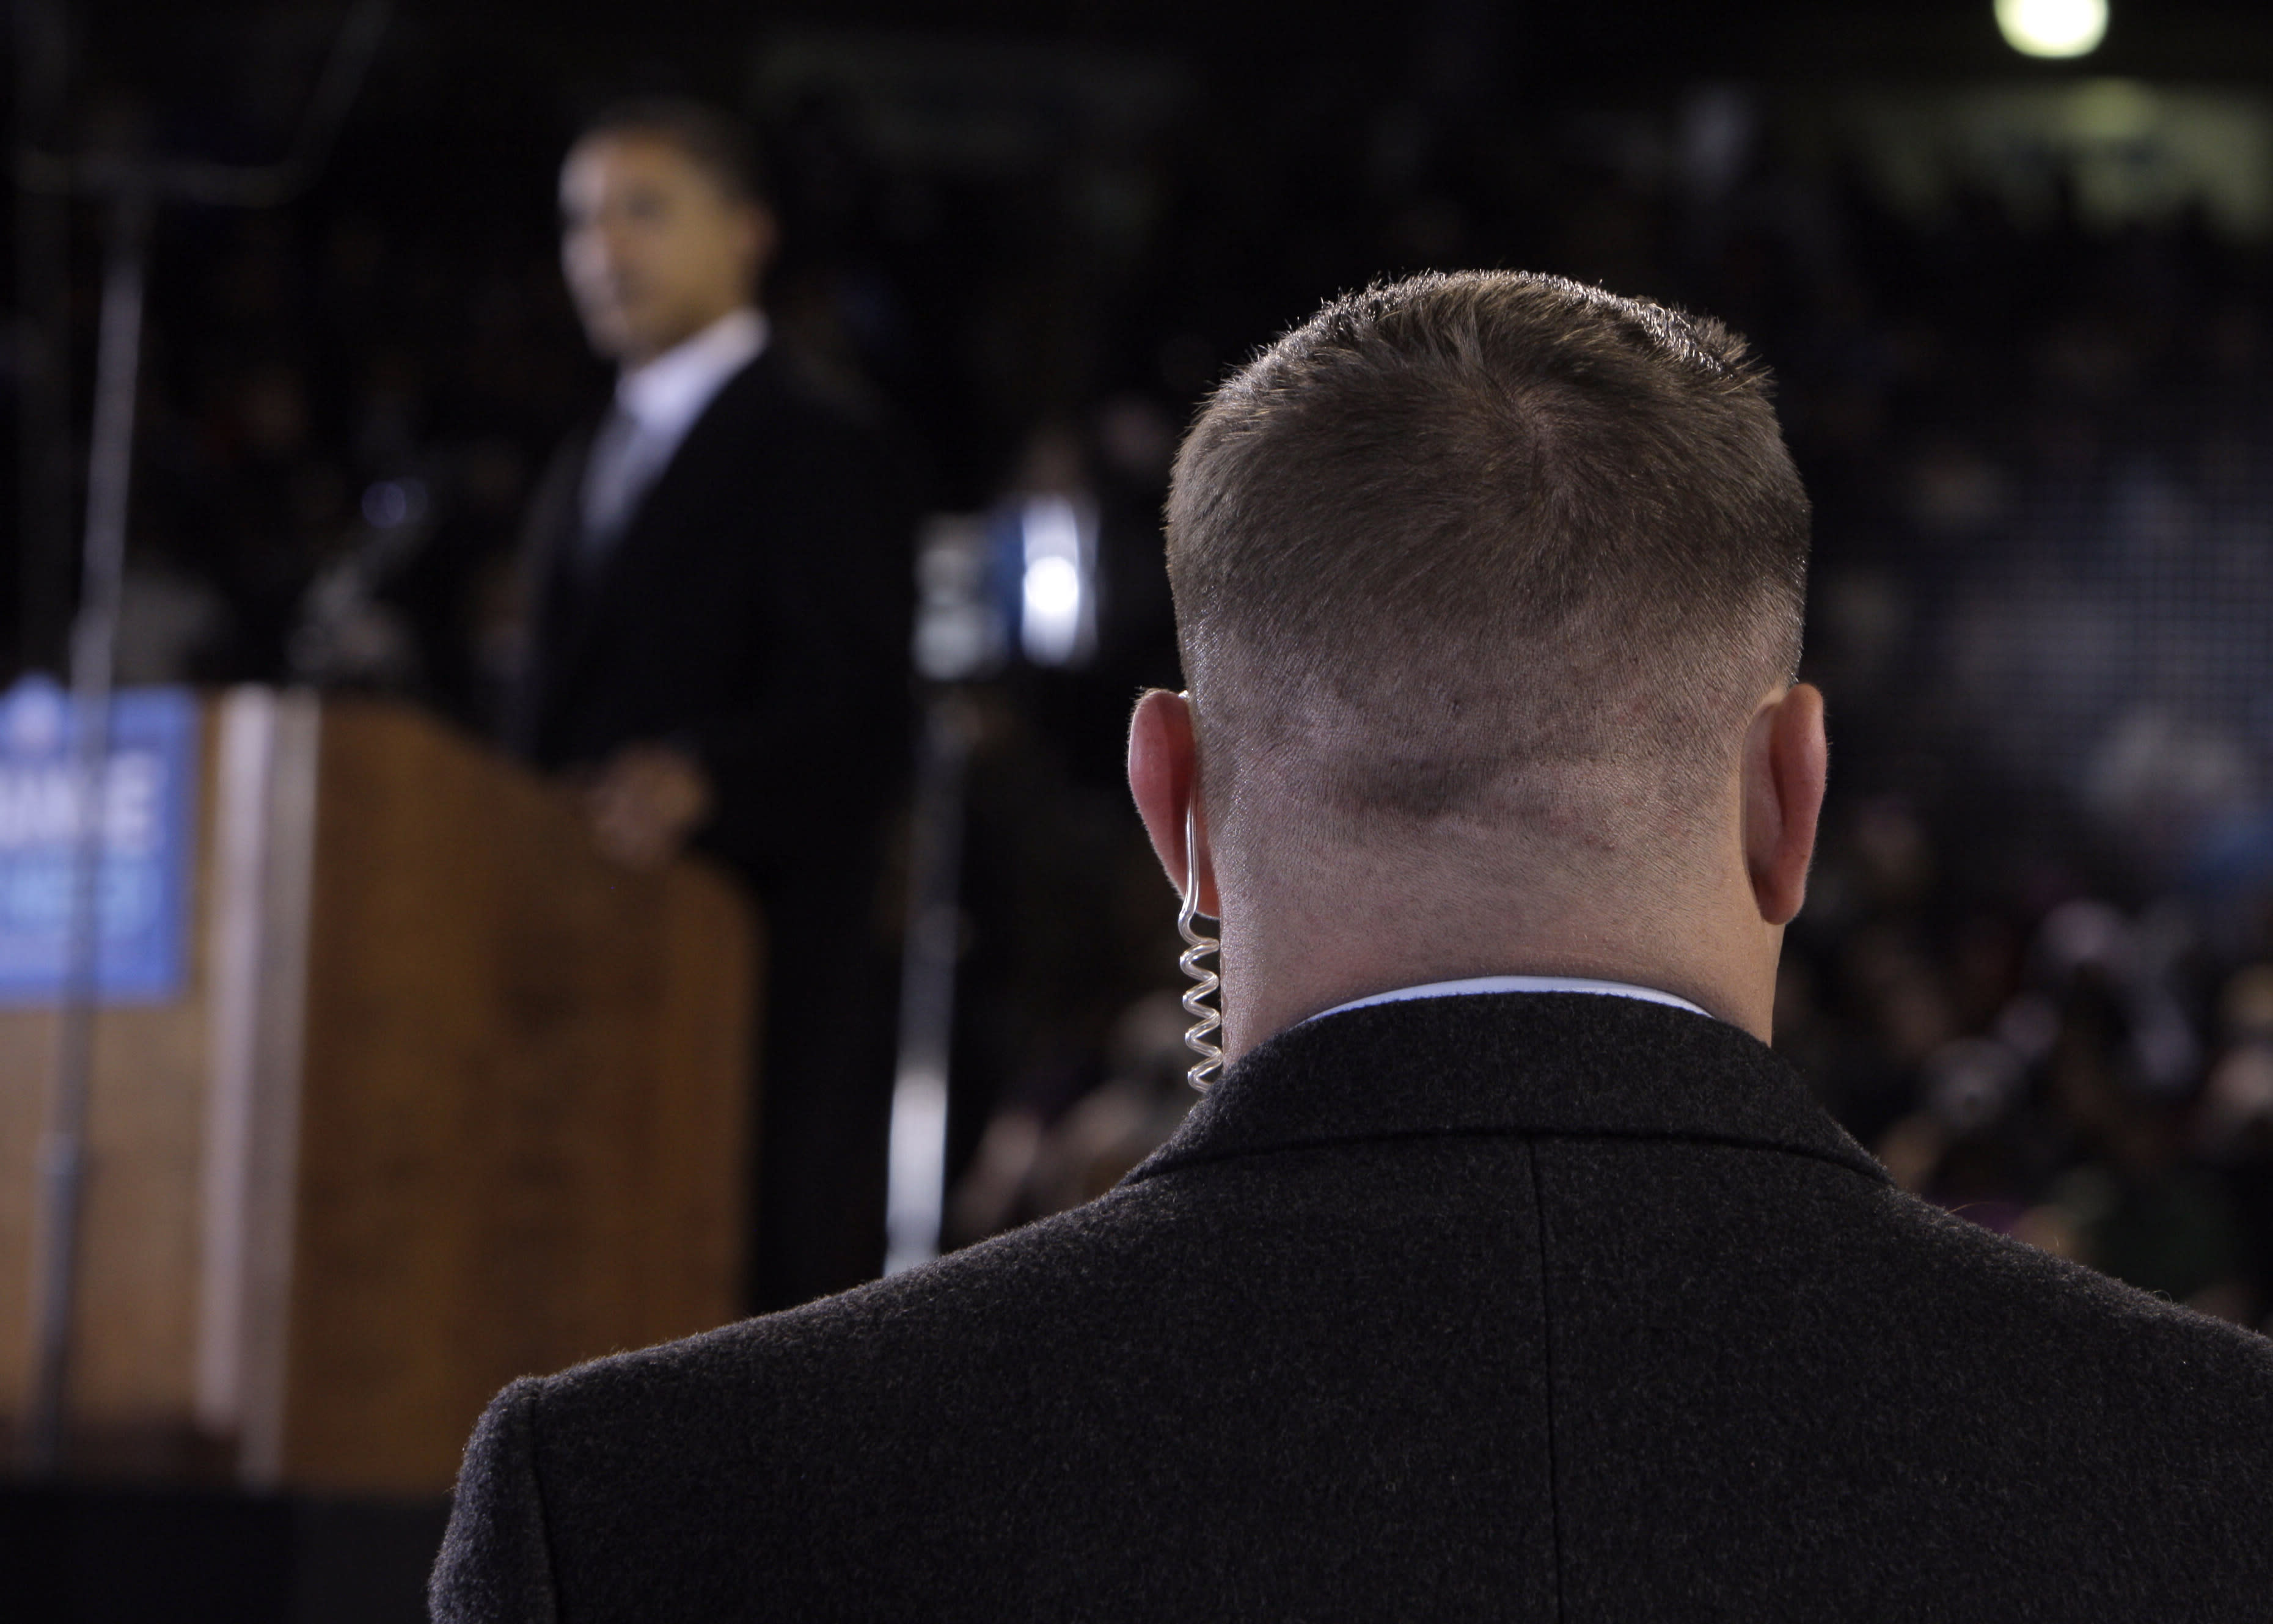 """FILE - In this Oct. 28, 2008 file photo, a Secret Service agent stands near then presidential candidate Barack Obama, background, at a rally in Norfolk, Va. Moving swiftly, the Secret Service forced out three agents Wednesday, April 18, 2012 in a prostitution scandal that has embarrassed President Obama. A senior congressman welcomed the move to hold people responsible for the tawdry episode but warned """"it's not over."""" (AP Photo/Jae C. Hong, File)"""